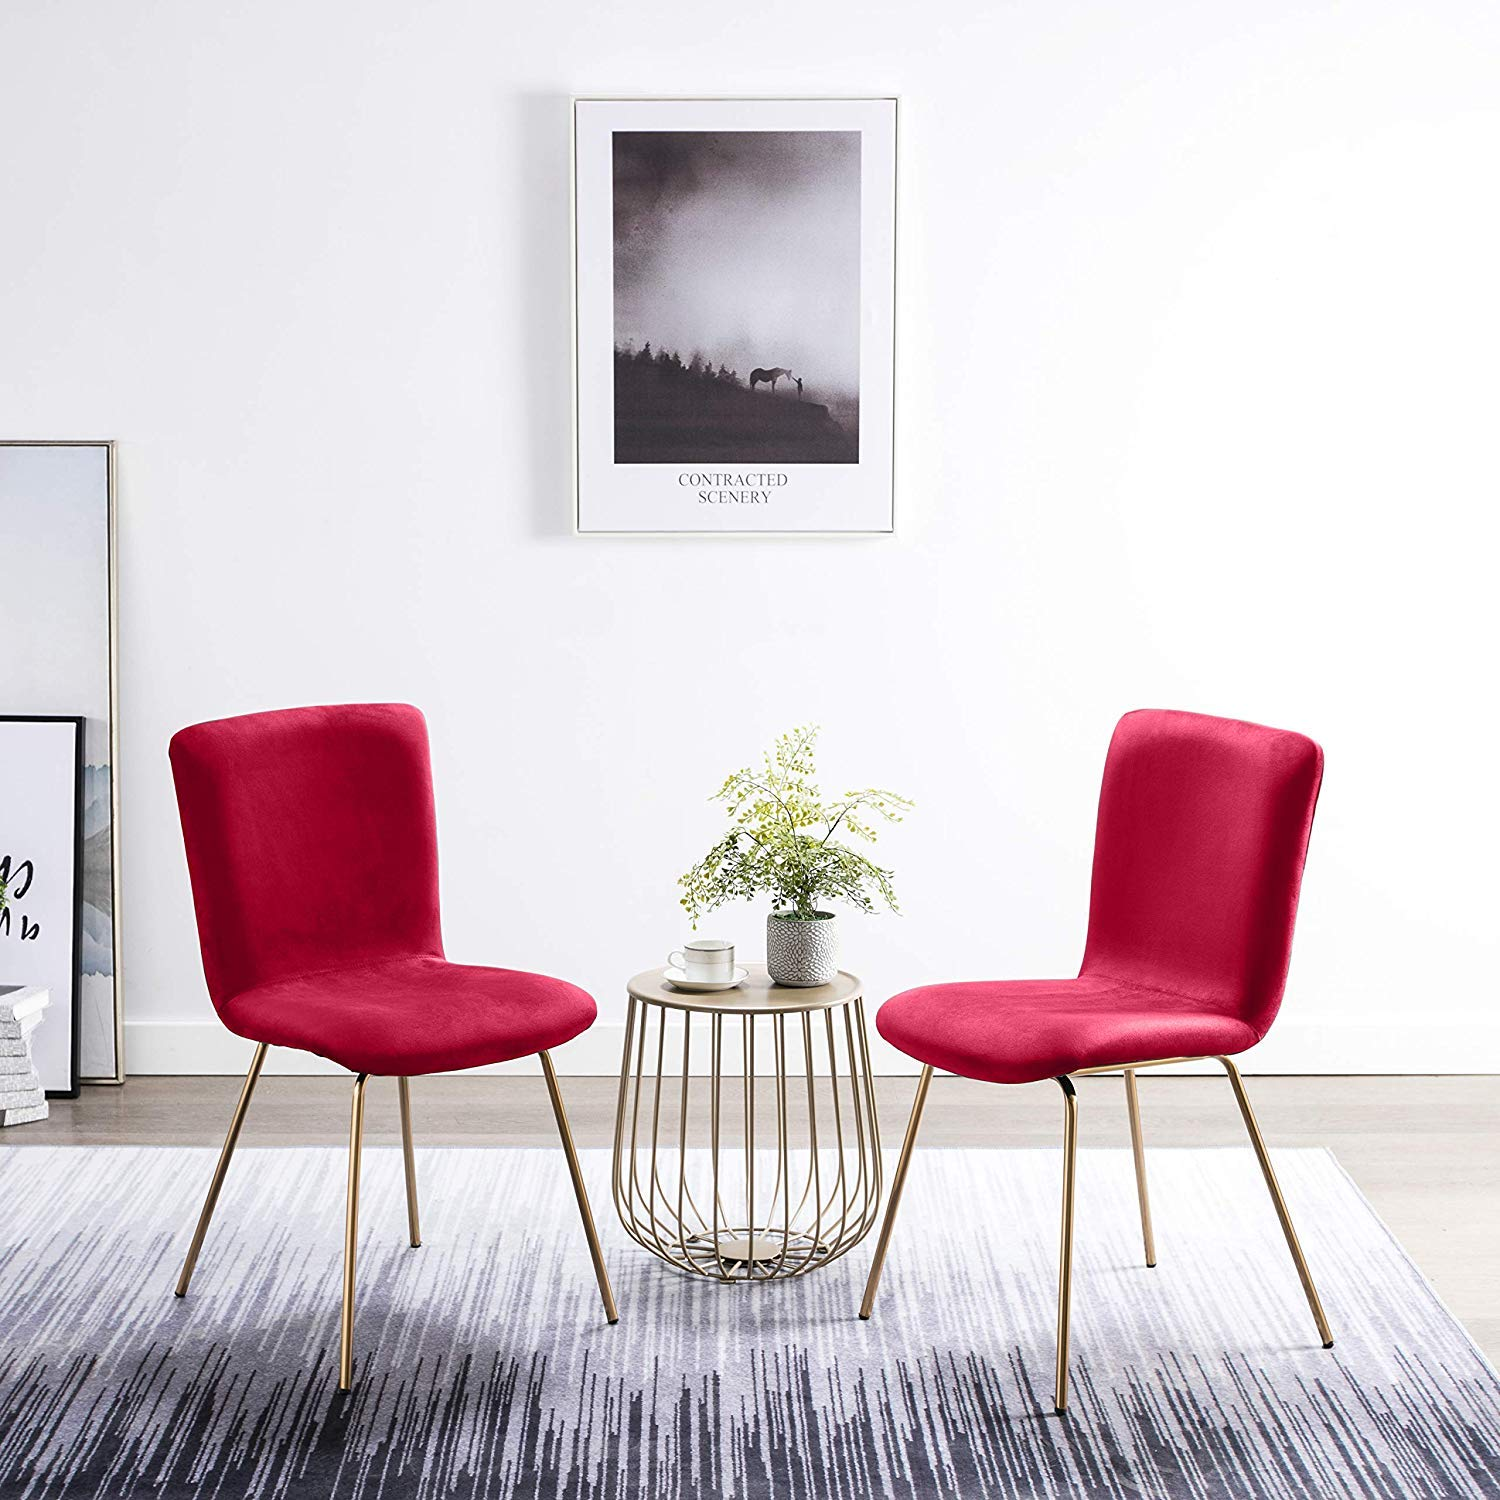 Art-Leon Velvet Dining Chairs, Mid Century Modern Velvet Upholstered Dining Side Chairs with Gold Legs Cute Desk Chairs for Kitchen Living Room Bedroom, Set of 2 (Red)